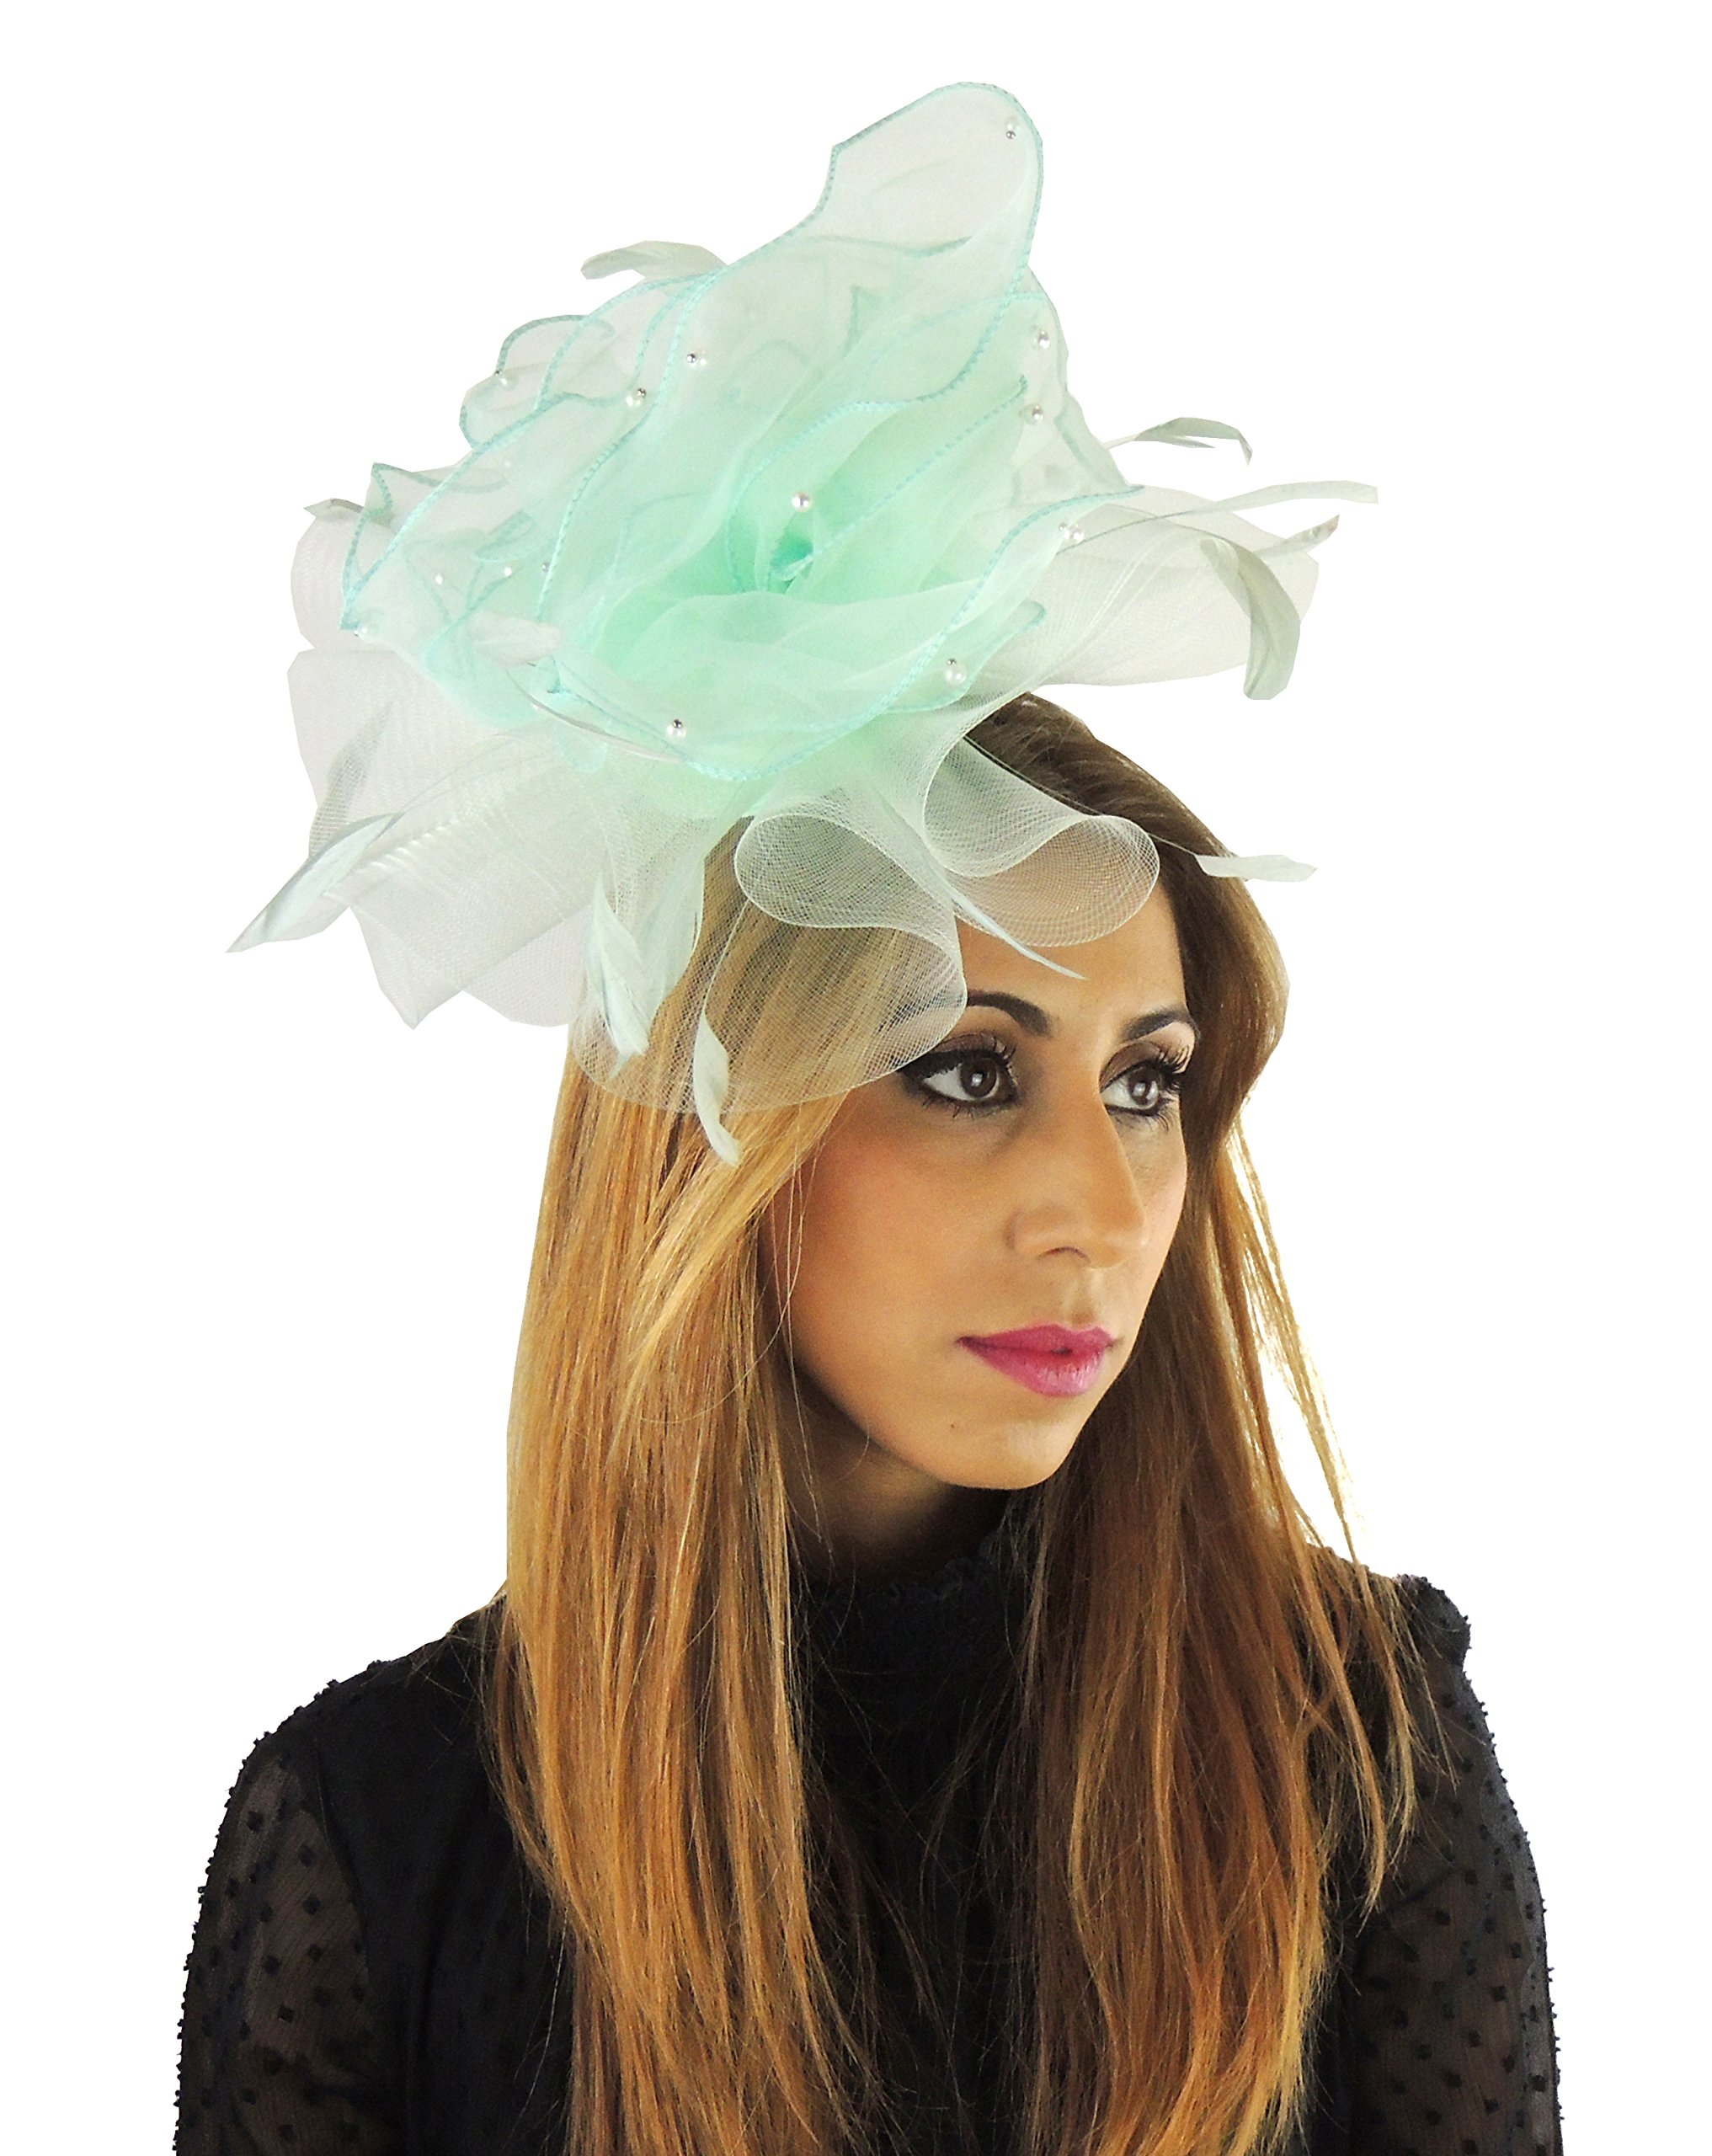 Hats By Cressida Layers Of Faux Pearl Trimmed Chiffon & crin Elegant Ladies Ascot Wedding Fascinator Hat Mint by Hats By Cressida